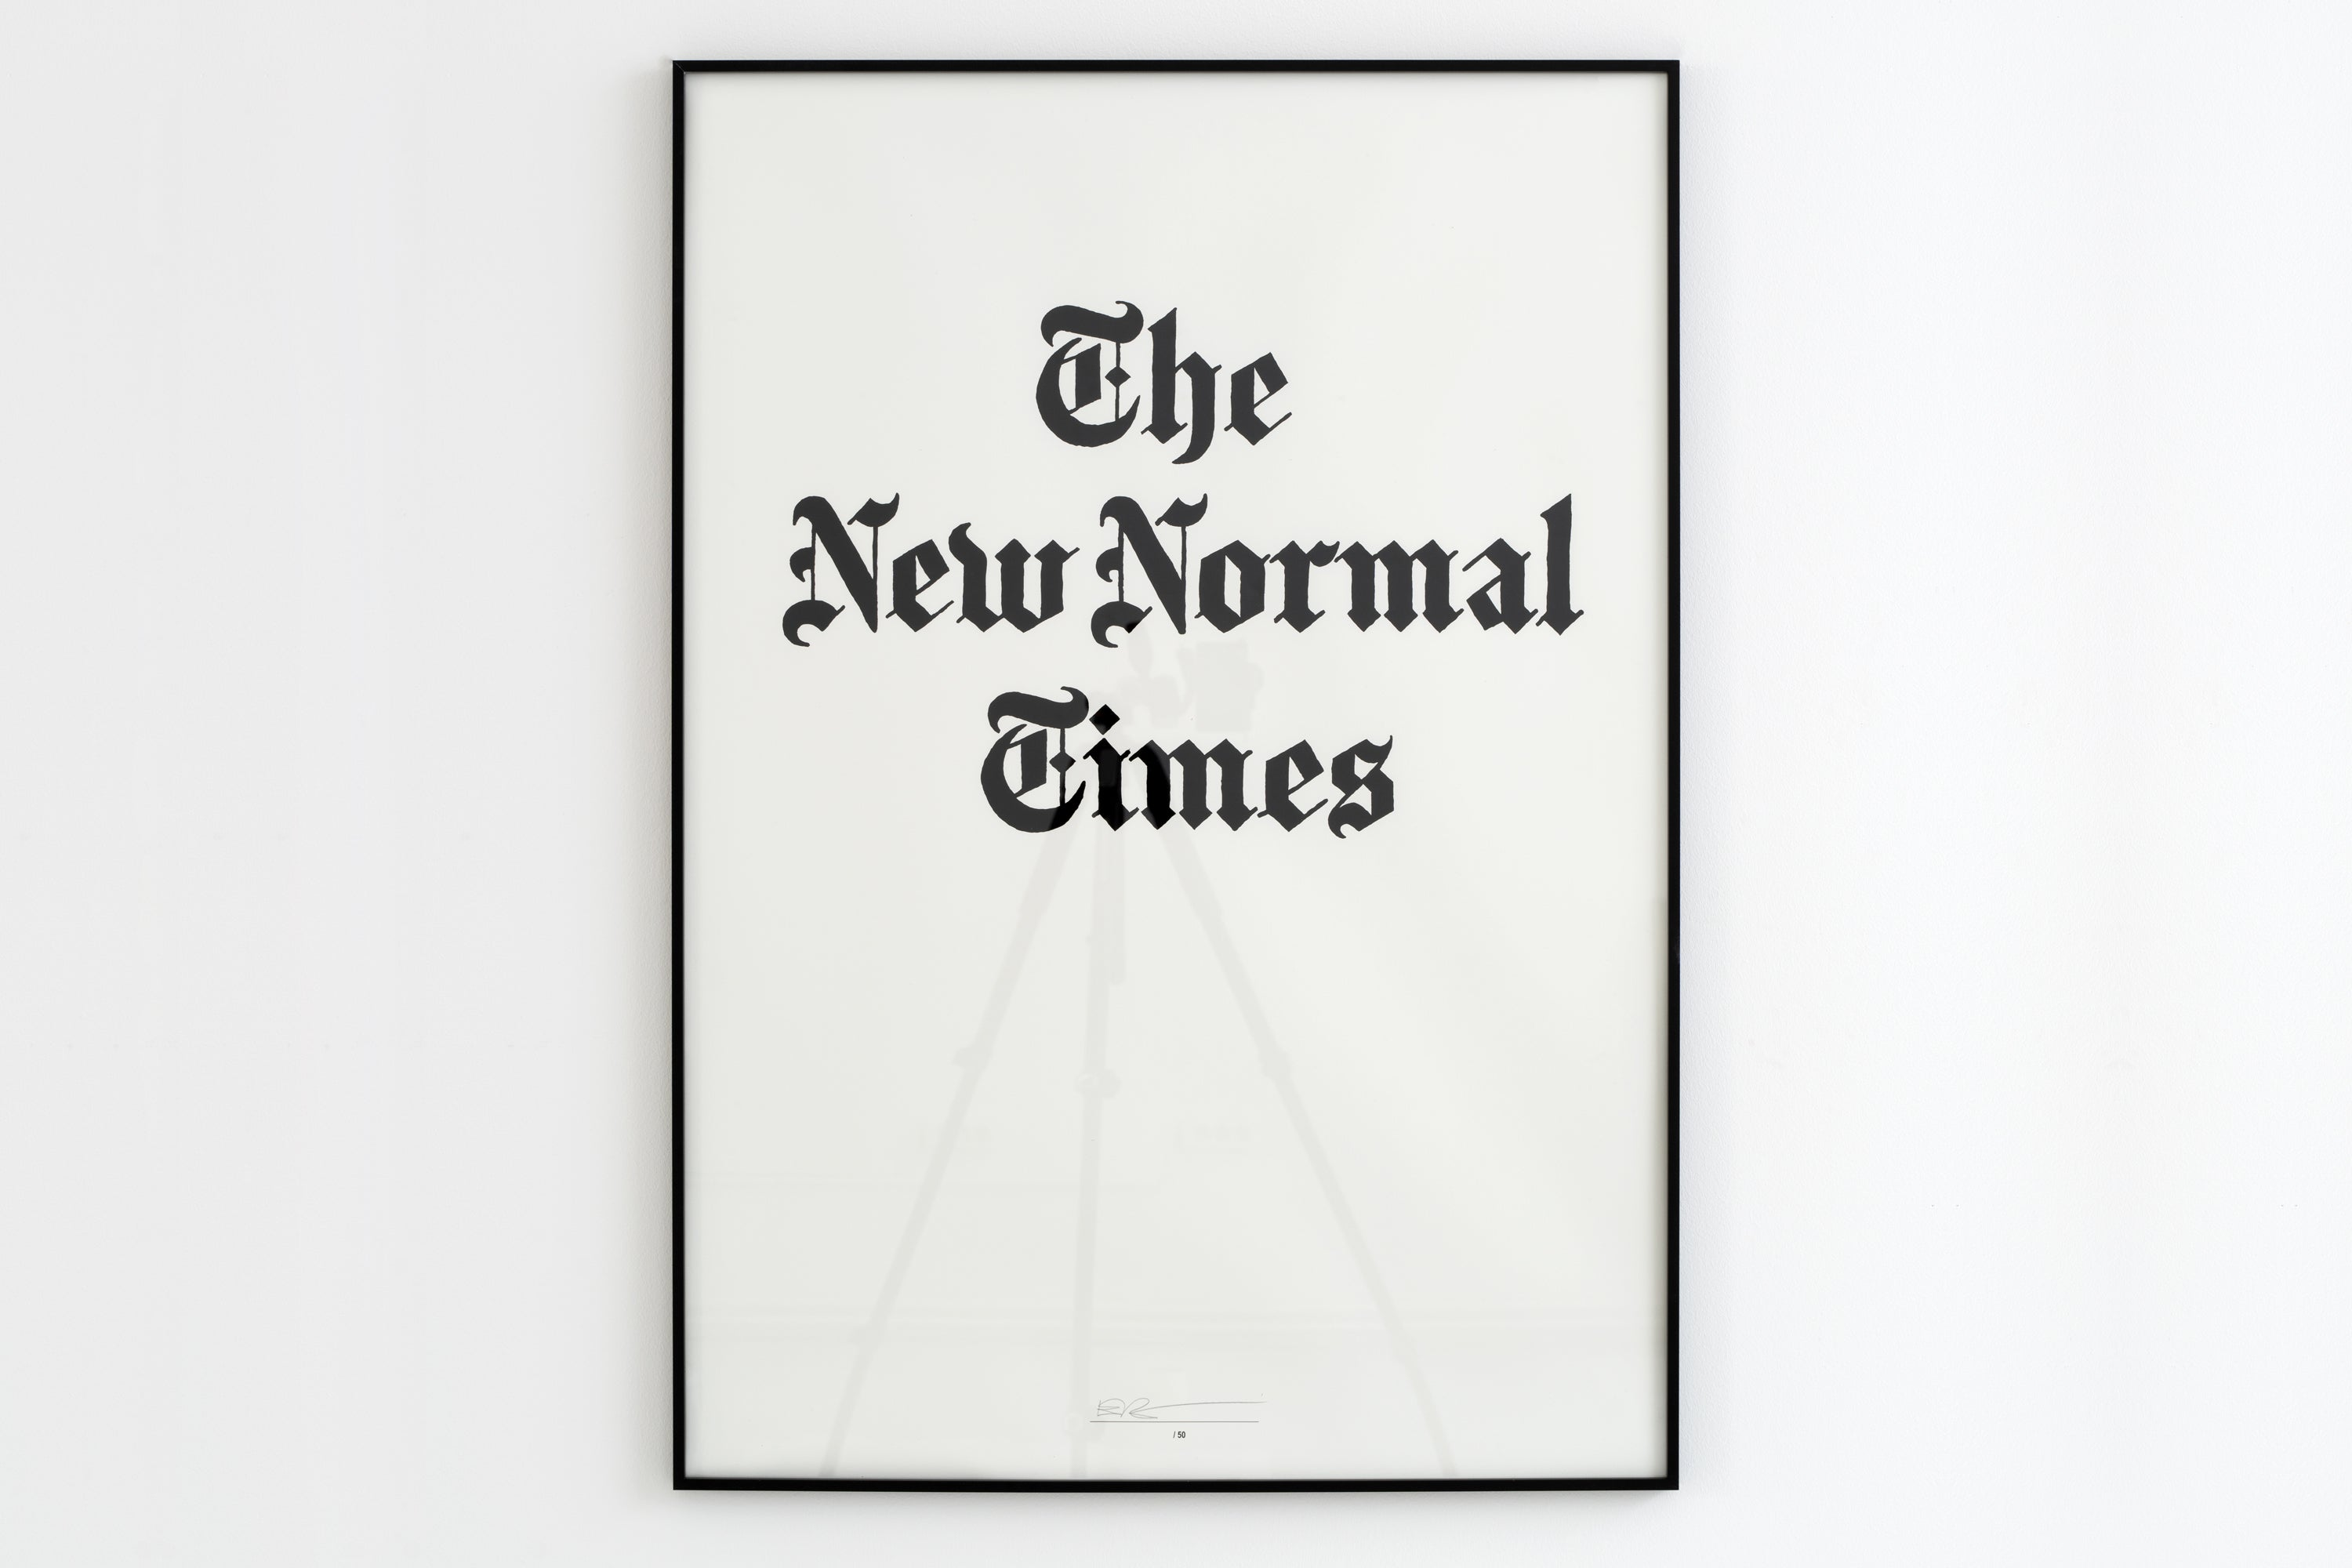 THE NEW NORMAL TIMES